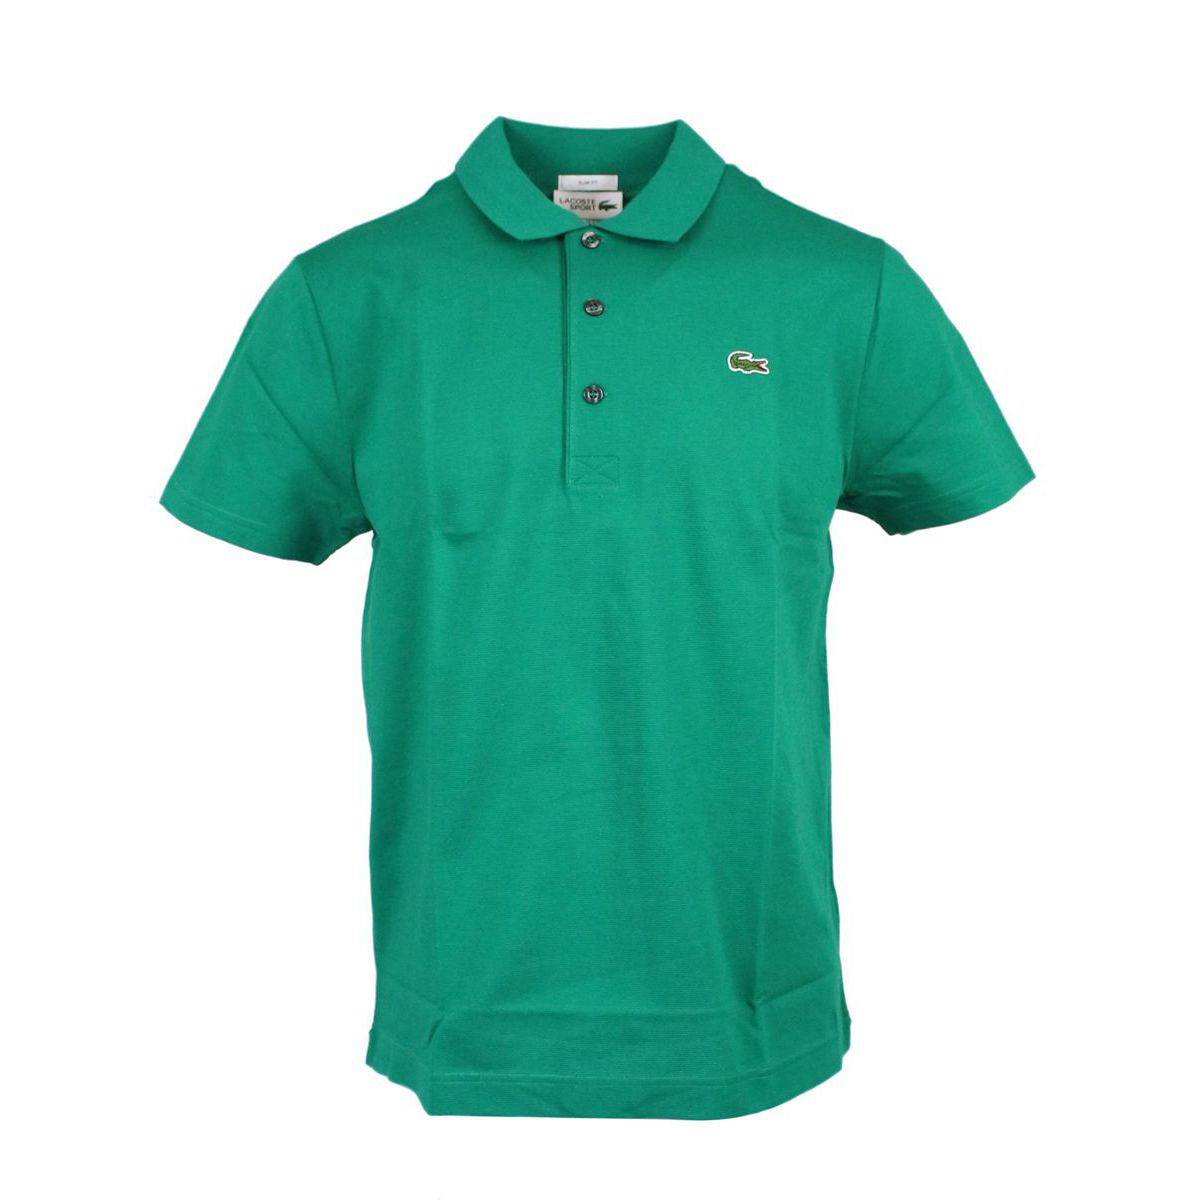 3-button sports slim fit polo shirt Green Lacoste